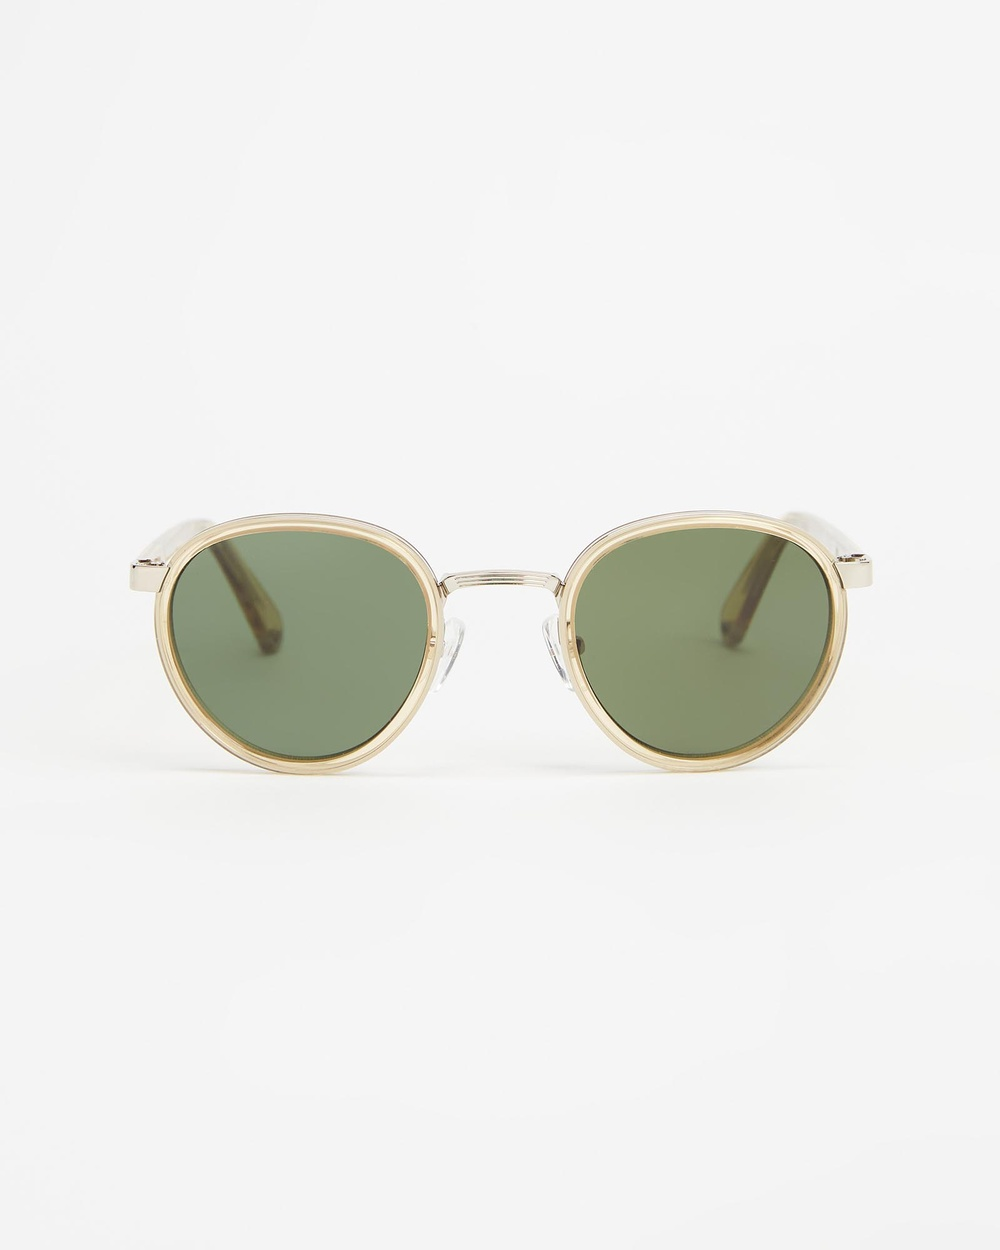 Pacifico Optical Carter Sunglasses Champagne & Green